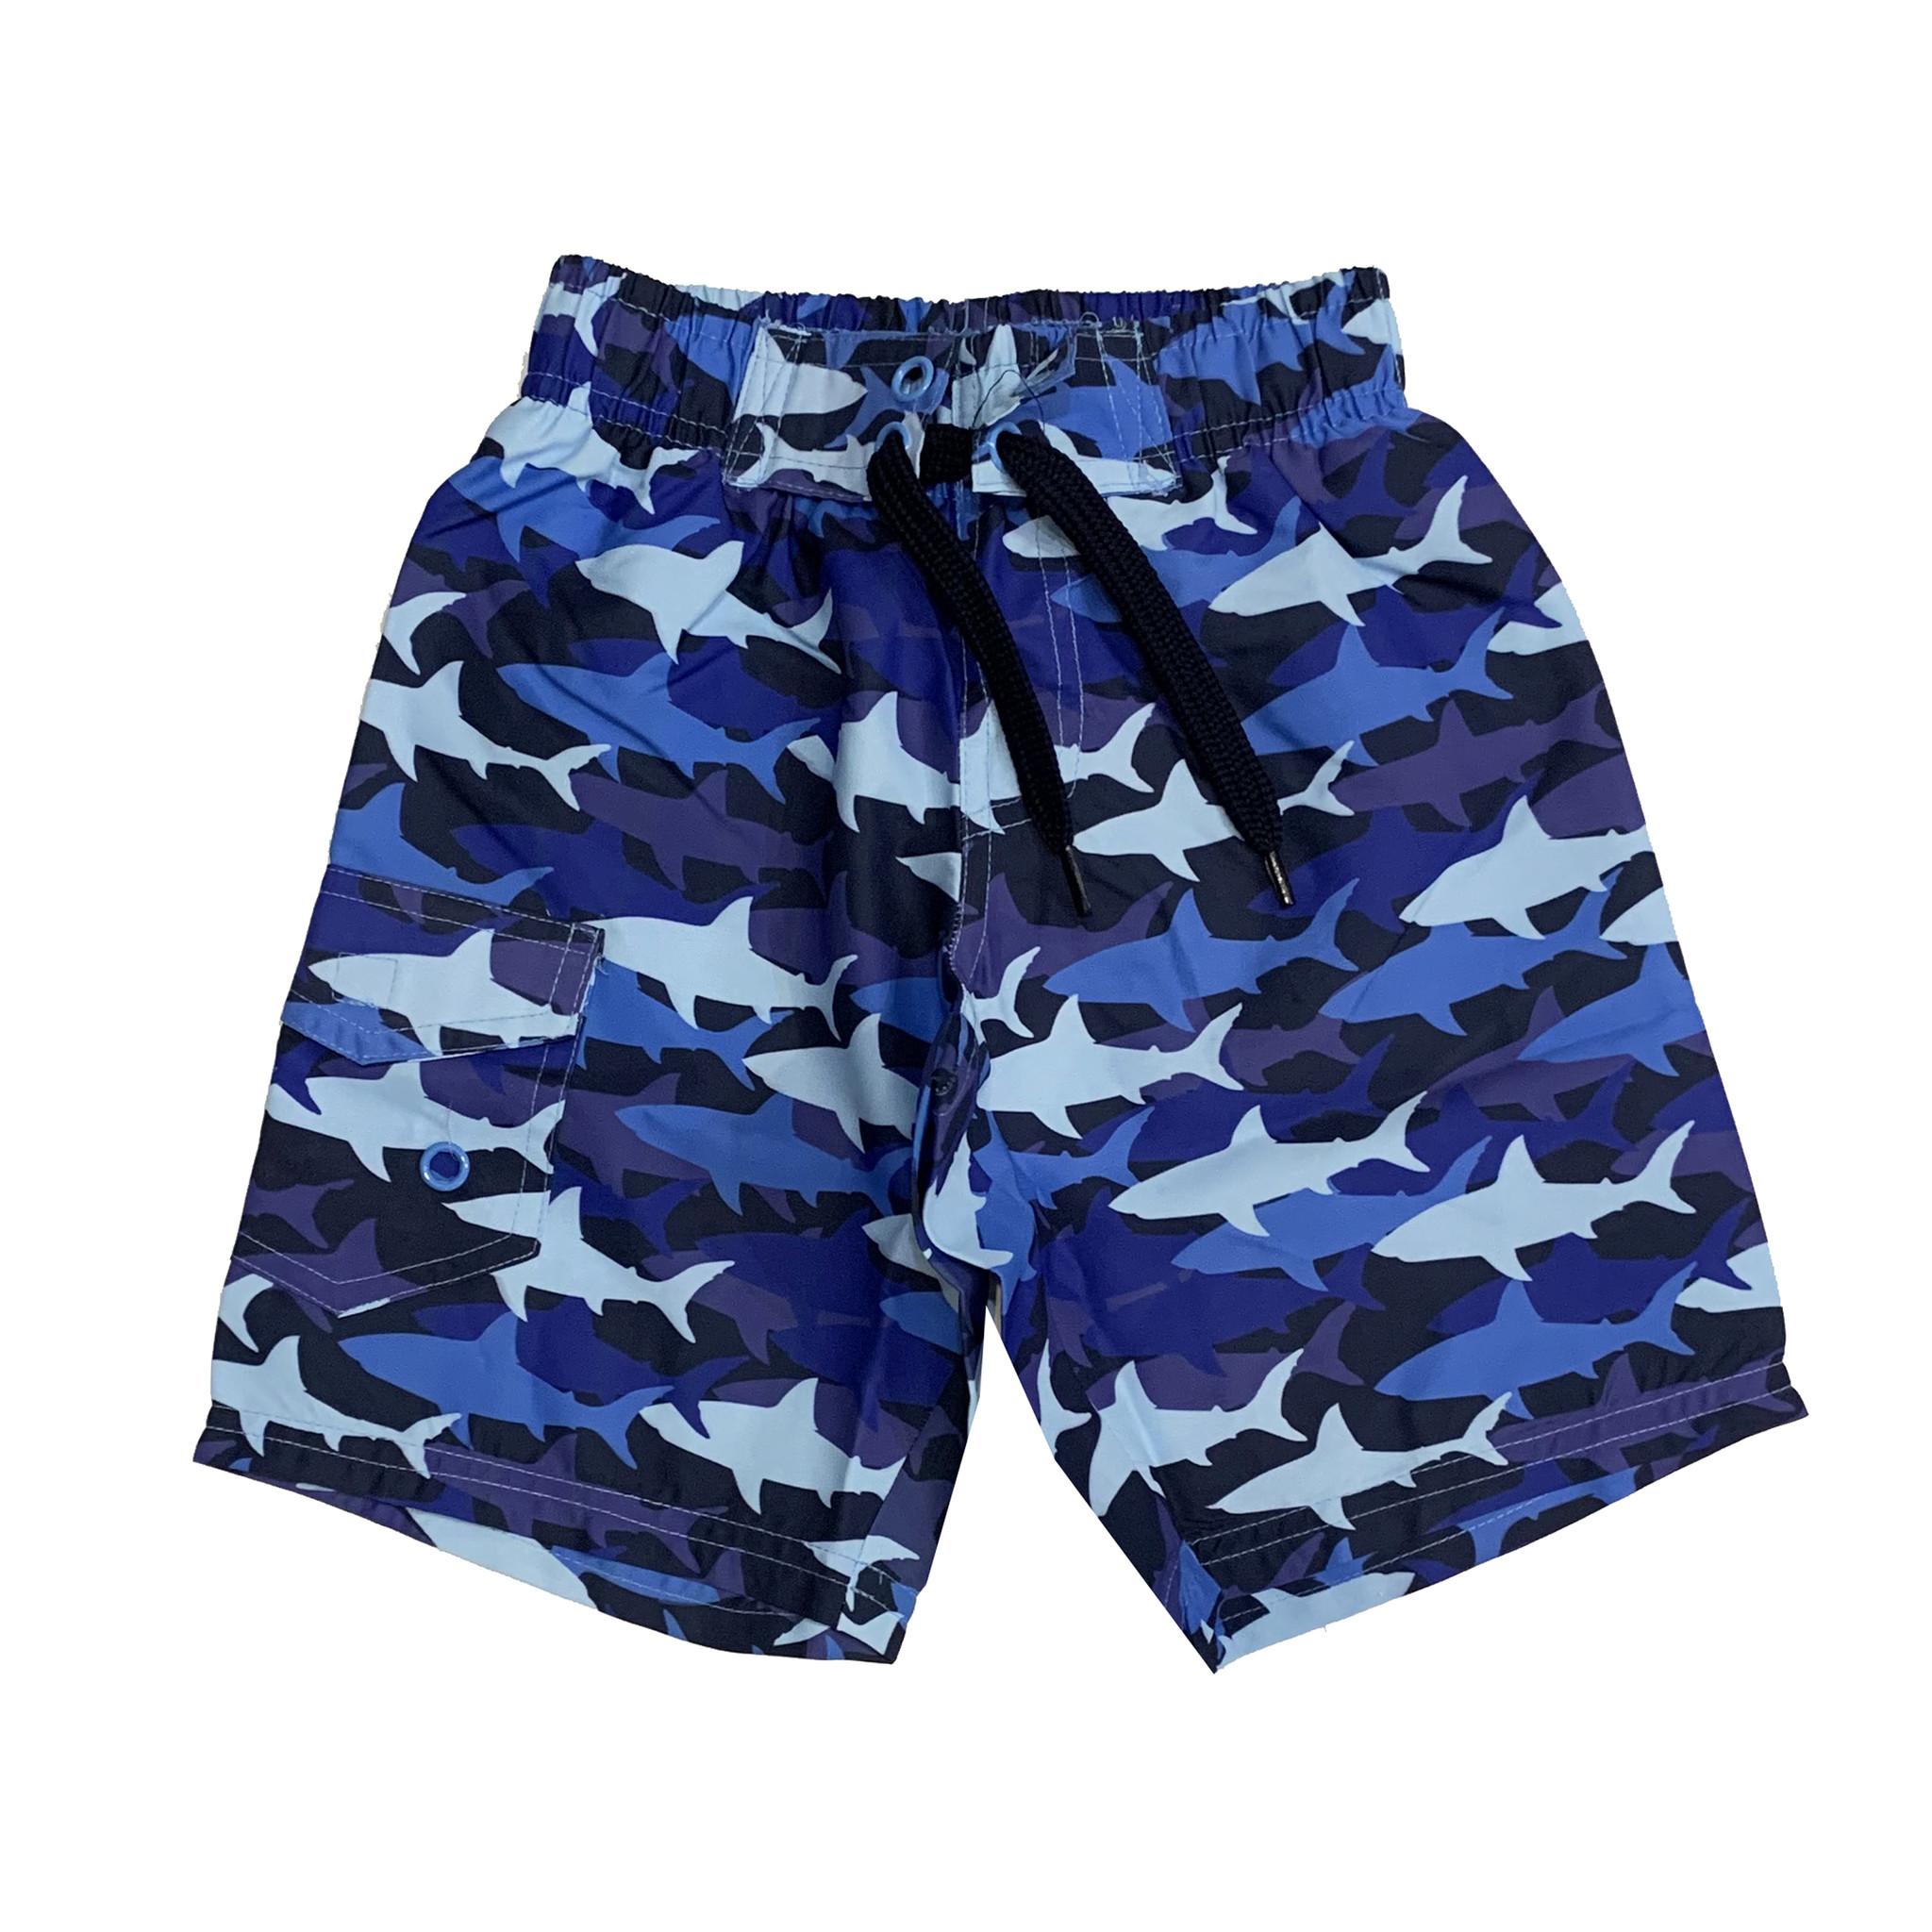 Mish Shark Camo Swimsuit